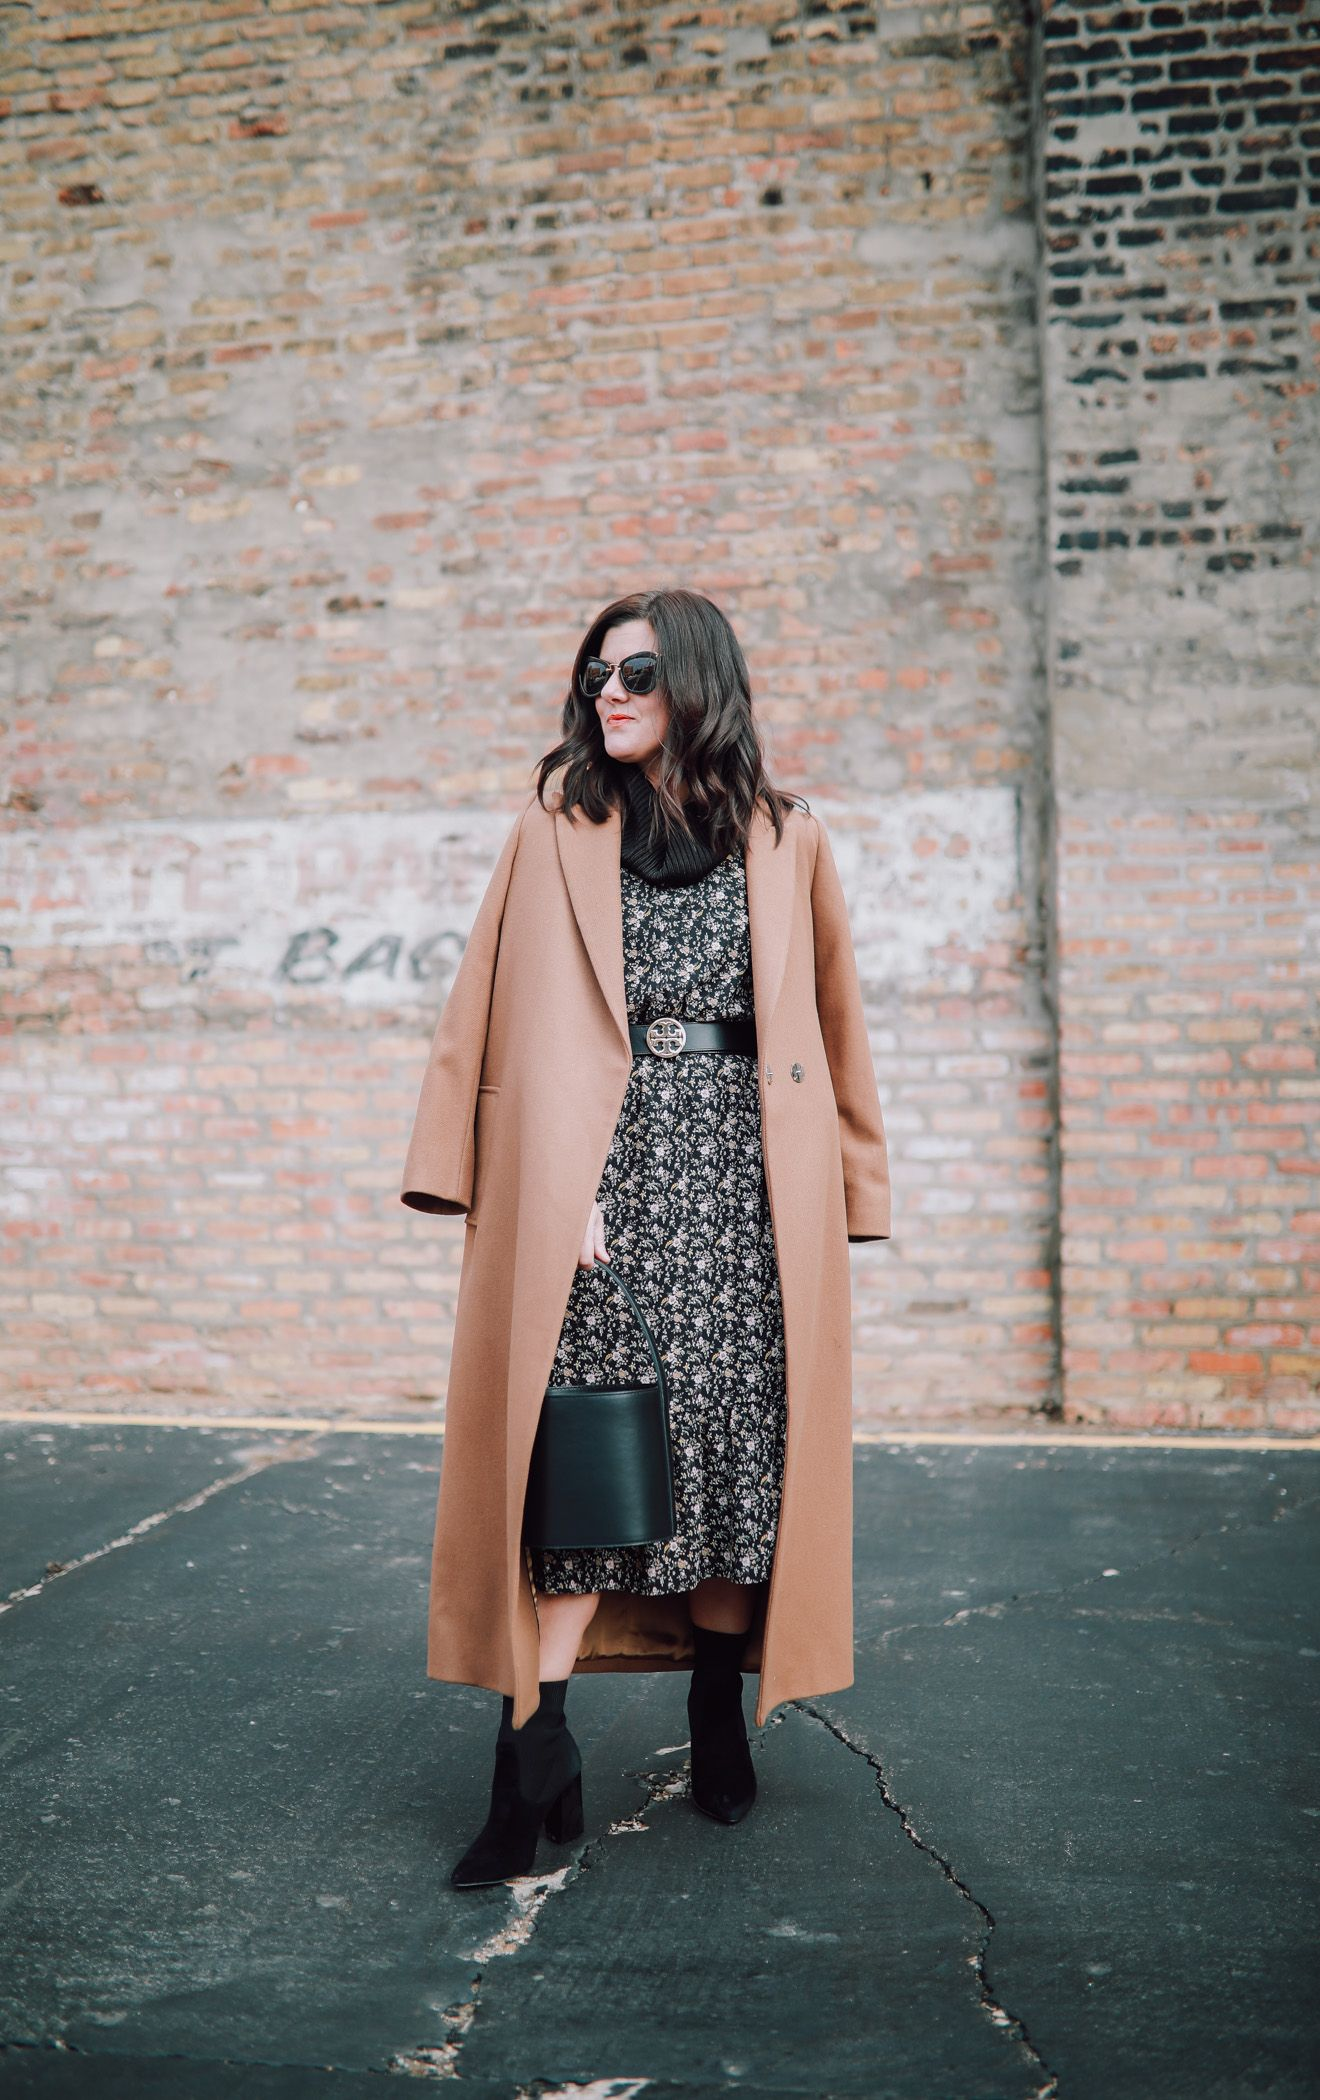 How To Style Your Summer Dress For Winter Giveaway Winter Dresses Fashion Summer Dresses [ 2100 x 1320 Pixel ]